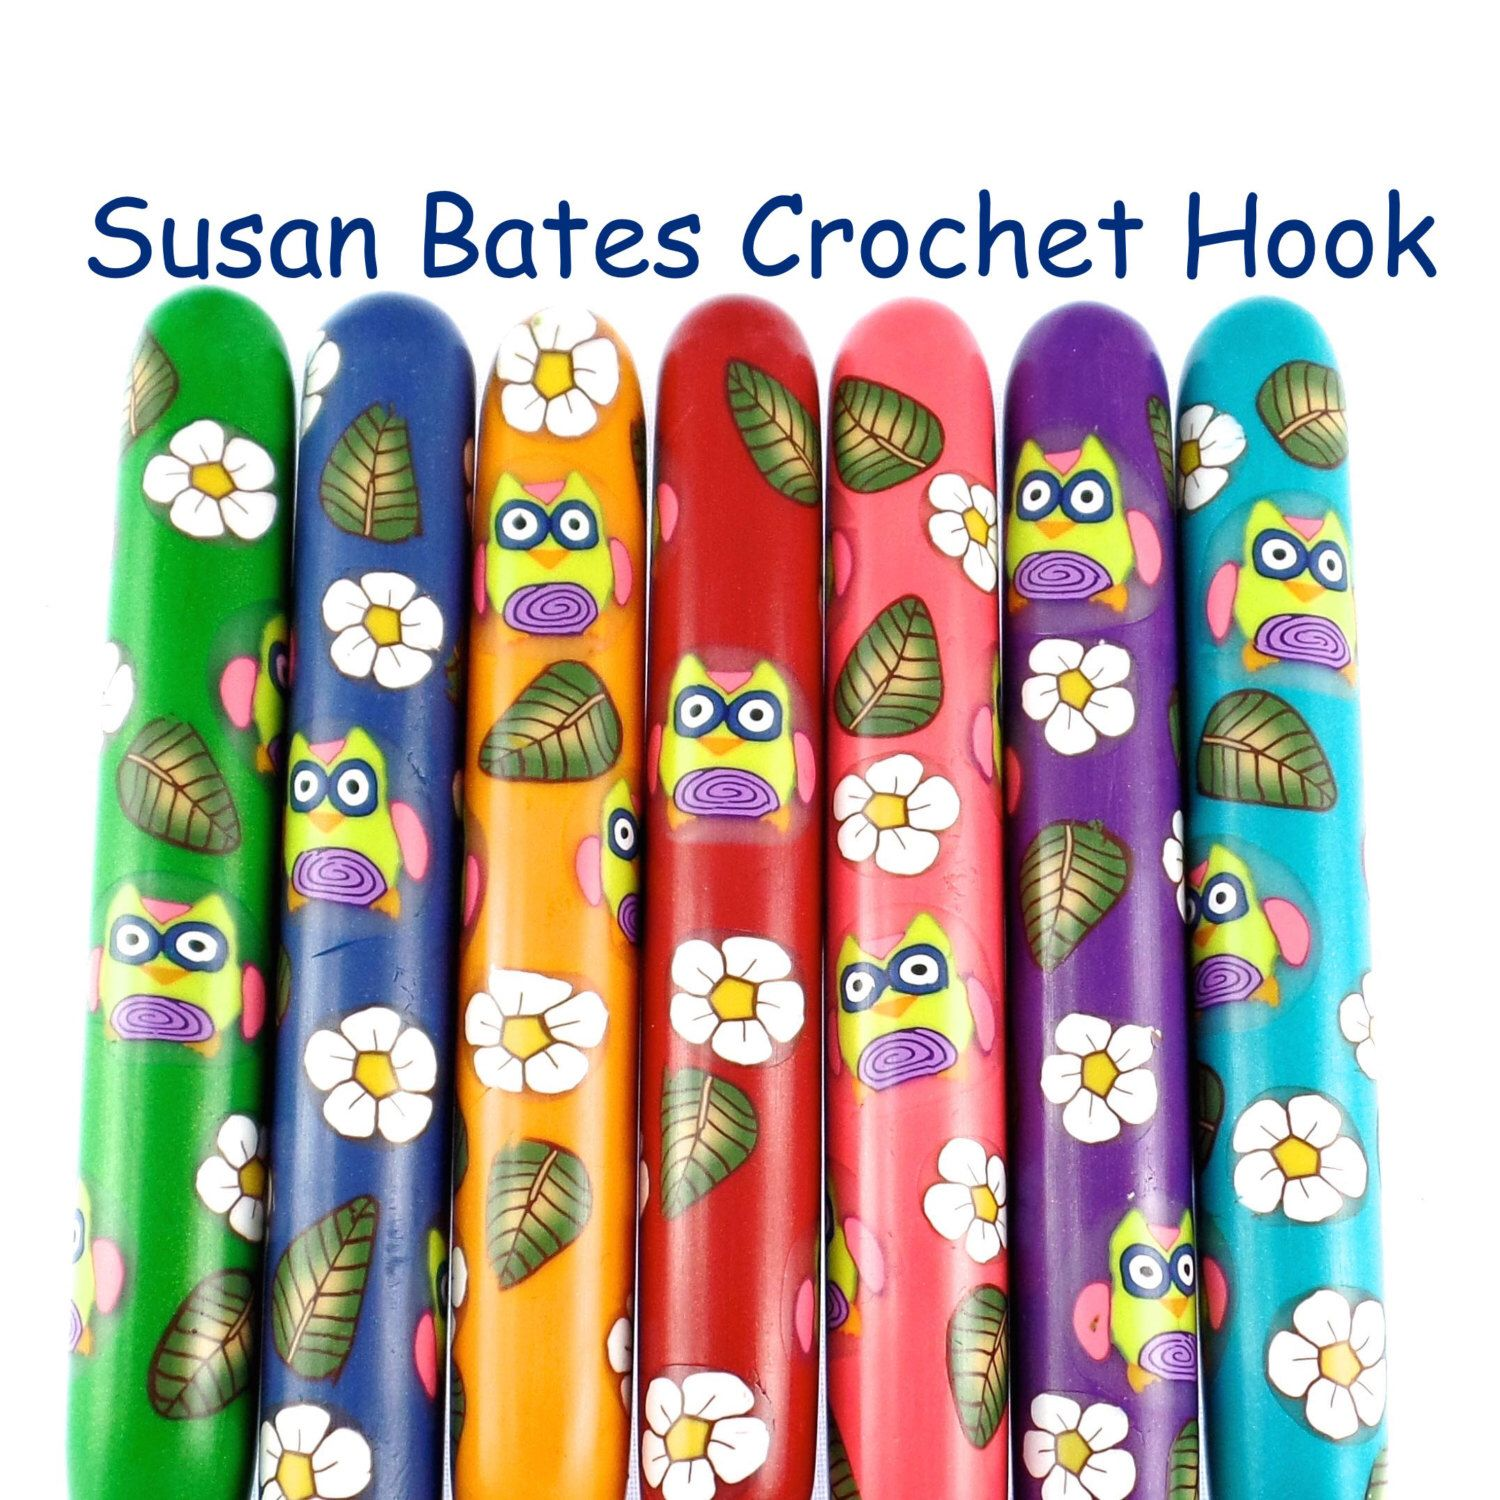 Susan Bates Polymer Clay Covered Crochet Hook, Owl Design by polymerclayshed on Etsy https://www.etsy.com/listing/232026784/susan-bates-polymer-clay-covered-crochet